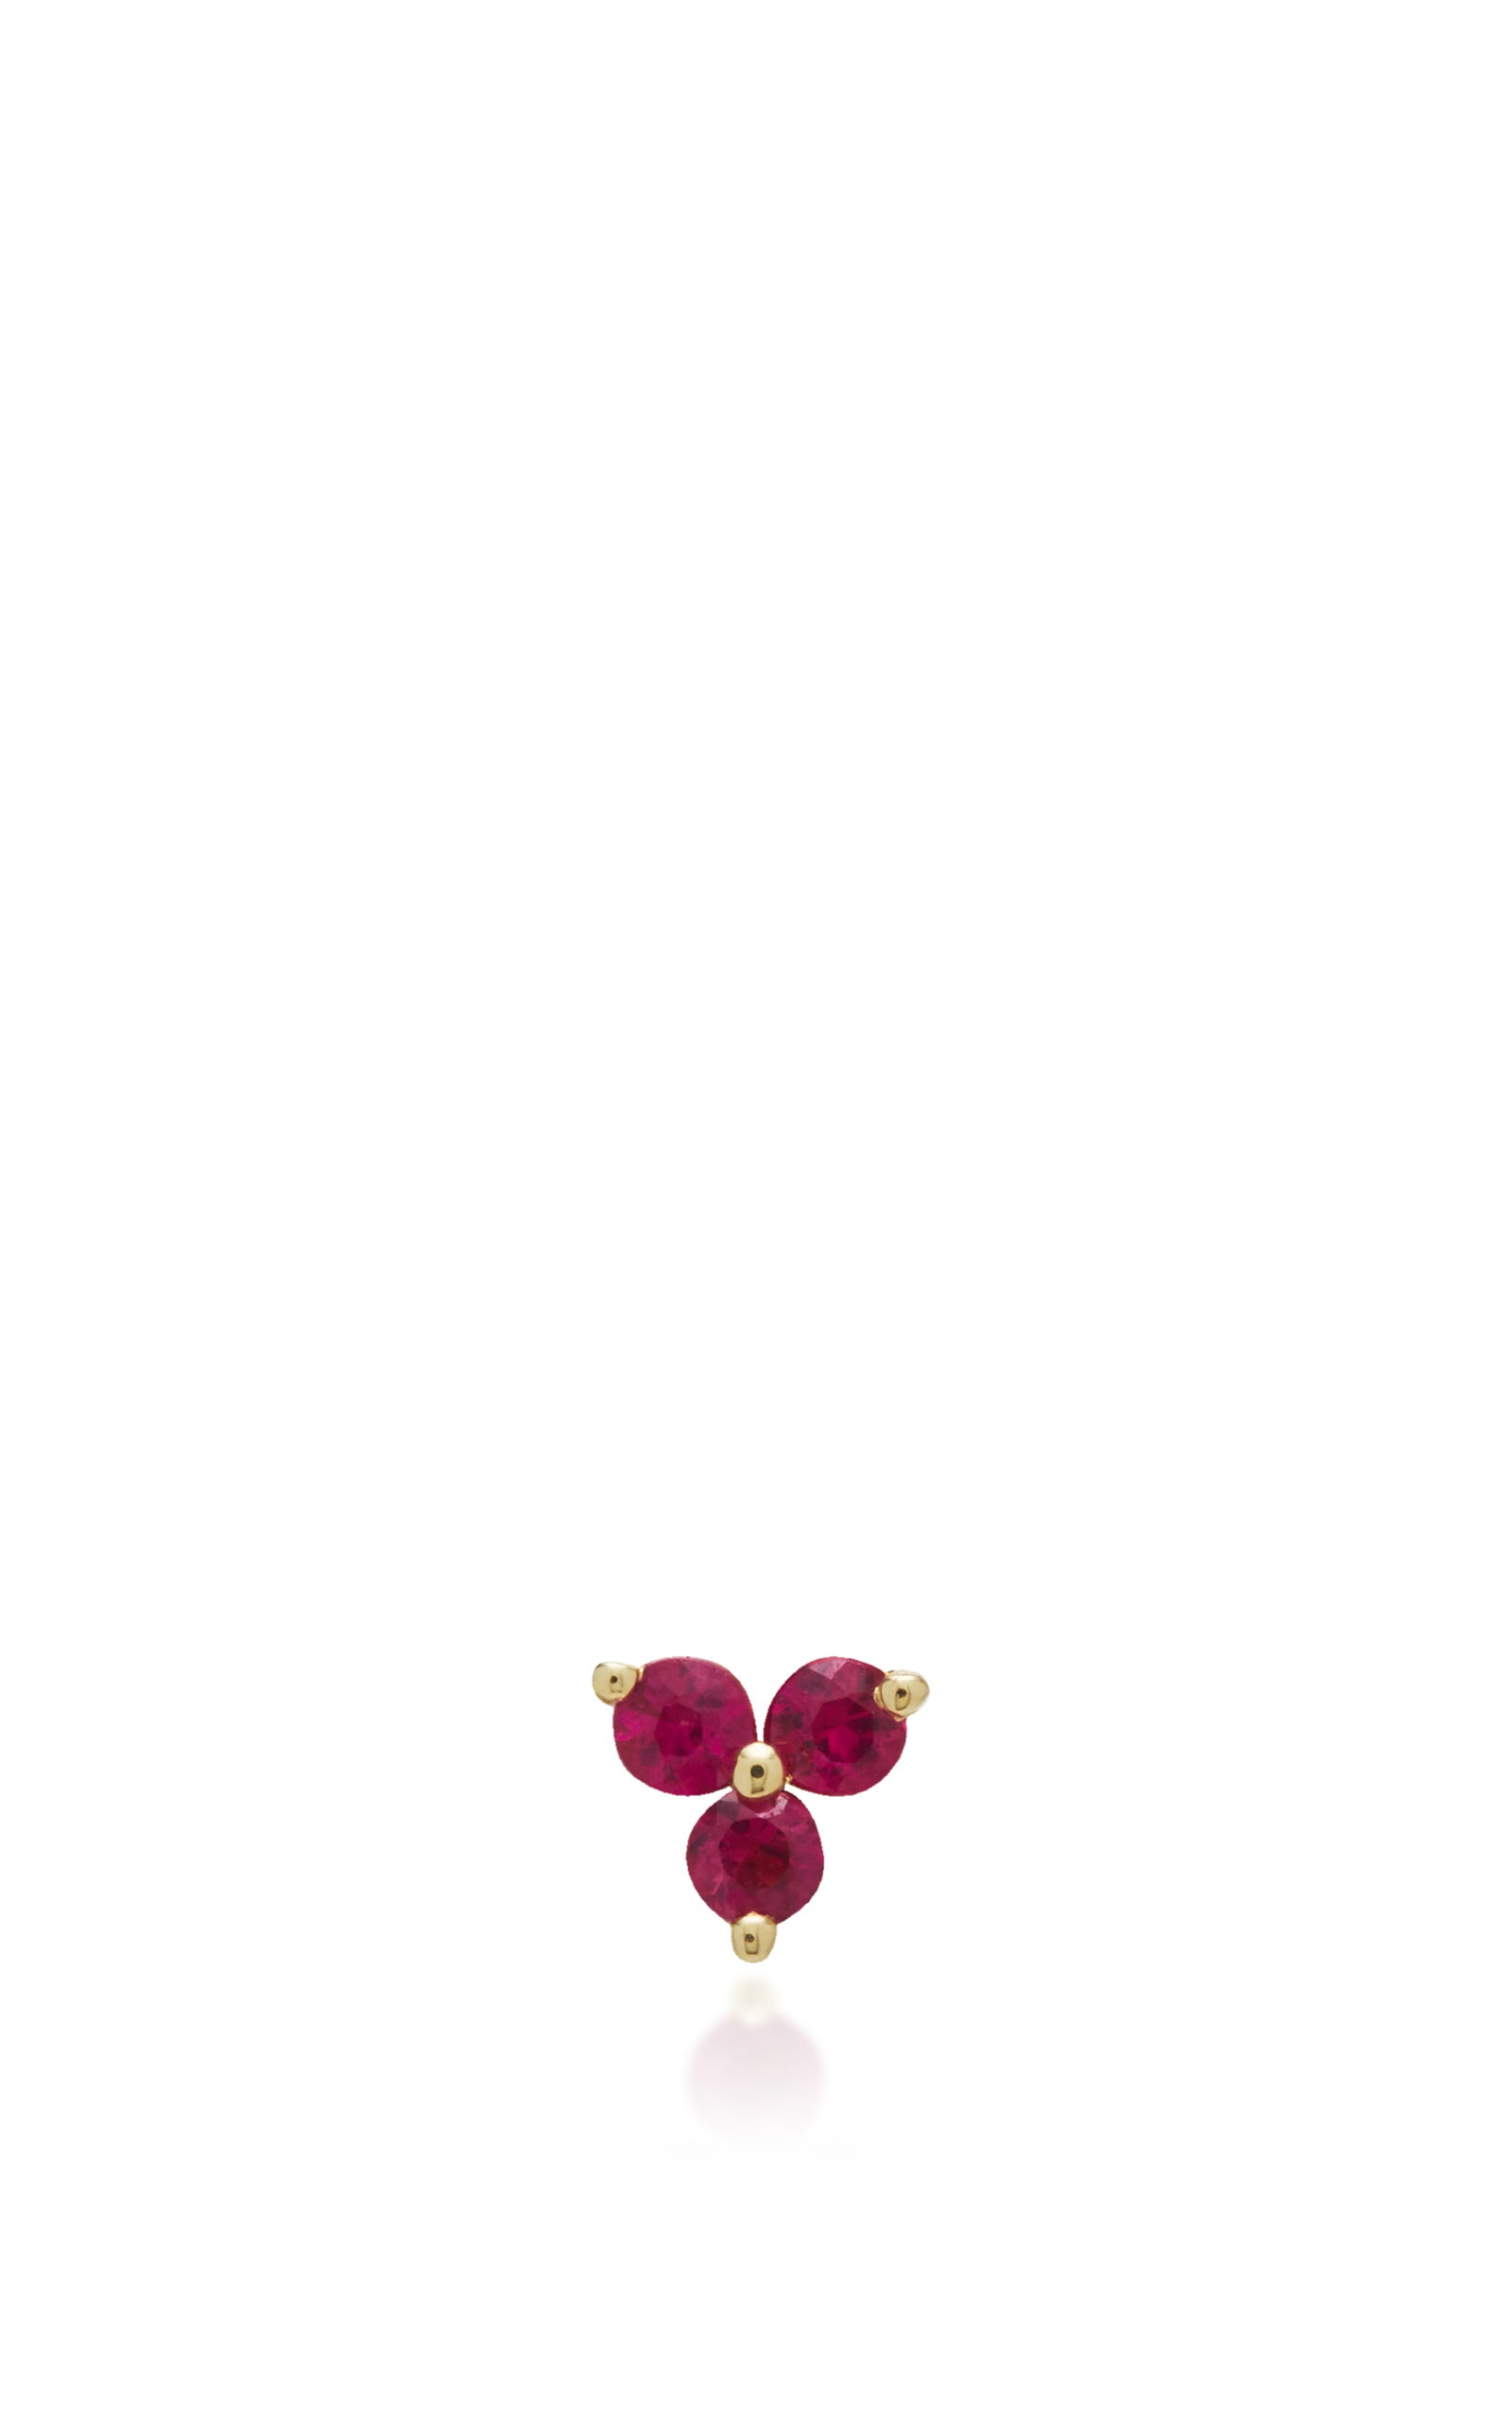 otiumberg lifestyle stud products ruby raspberry